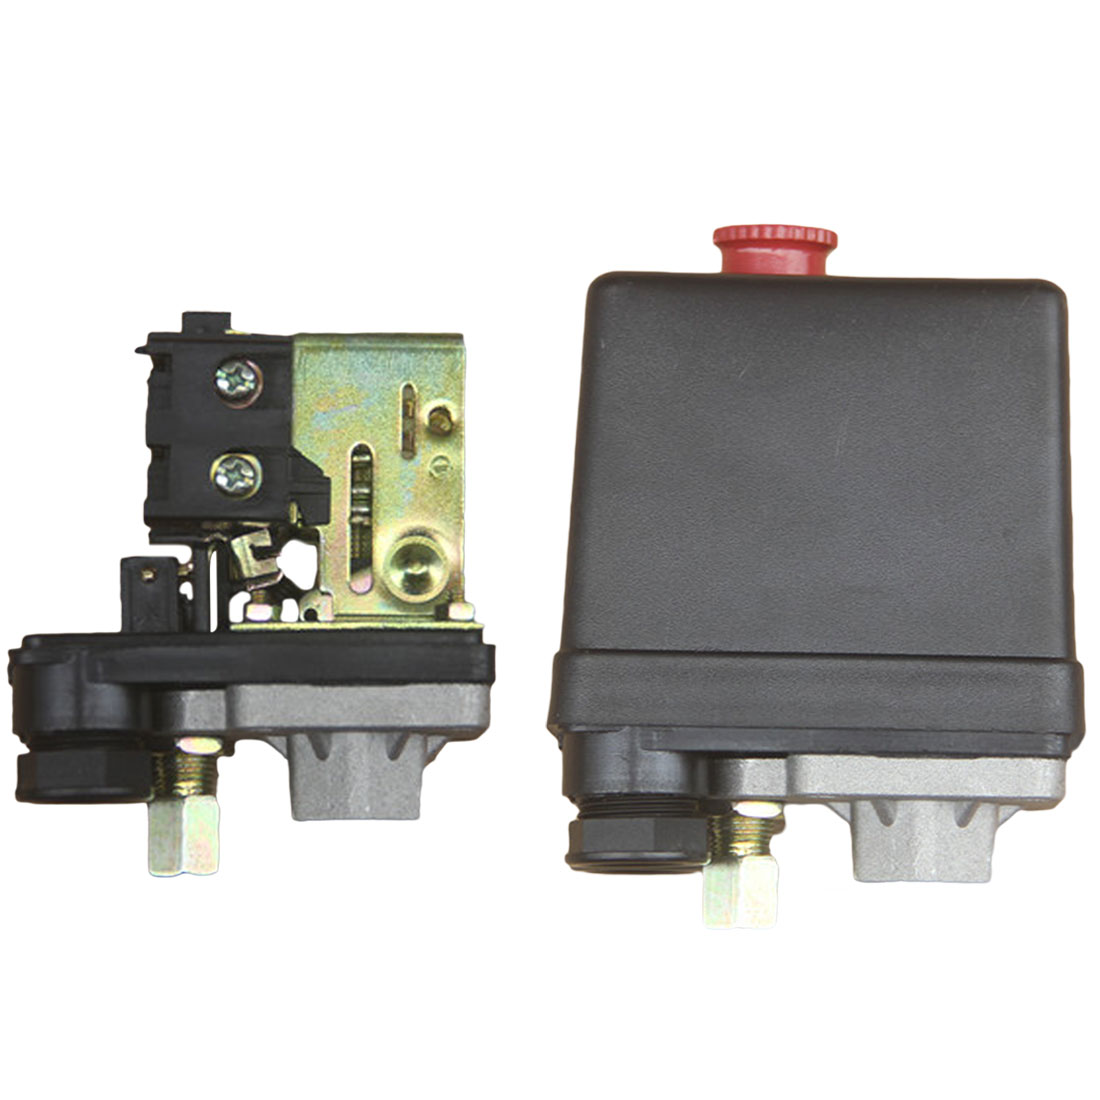 1pc Pressure Control Switch Air Compressor Valve Single Hole Relief Regulator Pressure Switch Stand Gauges 1/4 Thread1pc Pressure Control Switch Air Compressor Valve Single Hole Relief Regulator Pressure Switch Stand Gauges 1/4 Thread